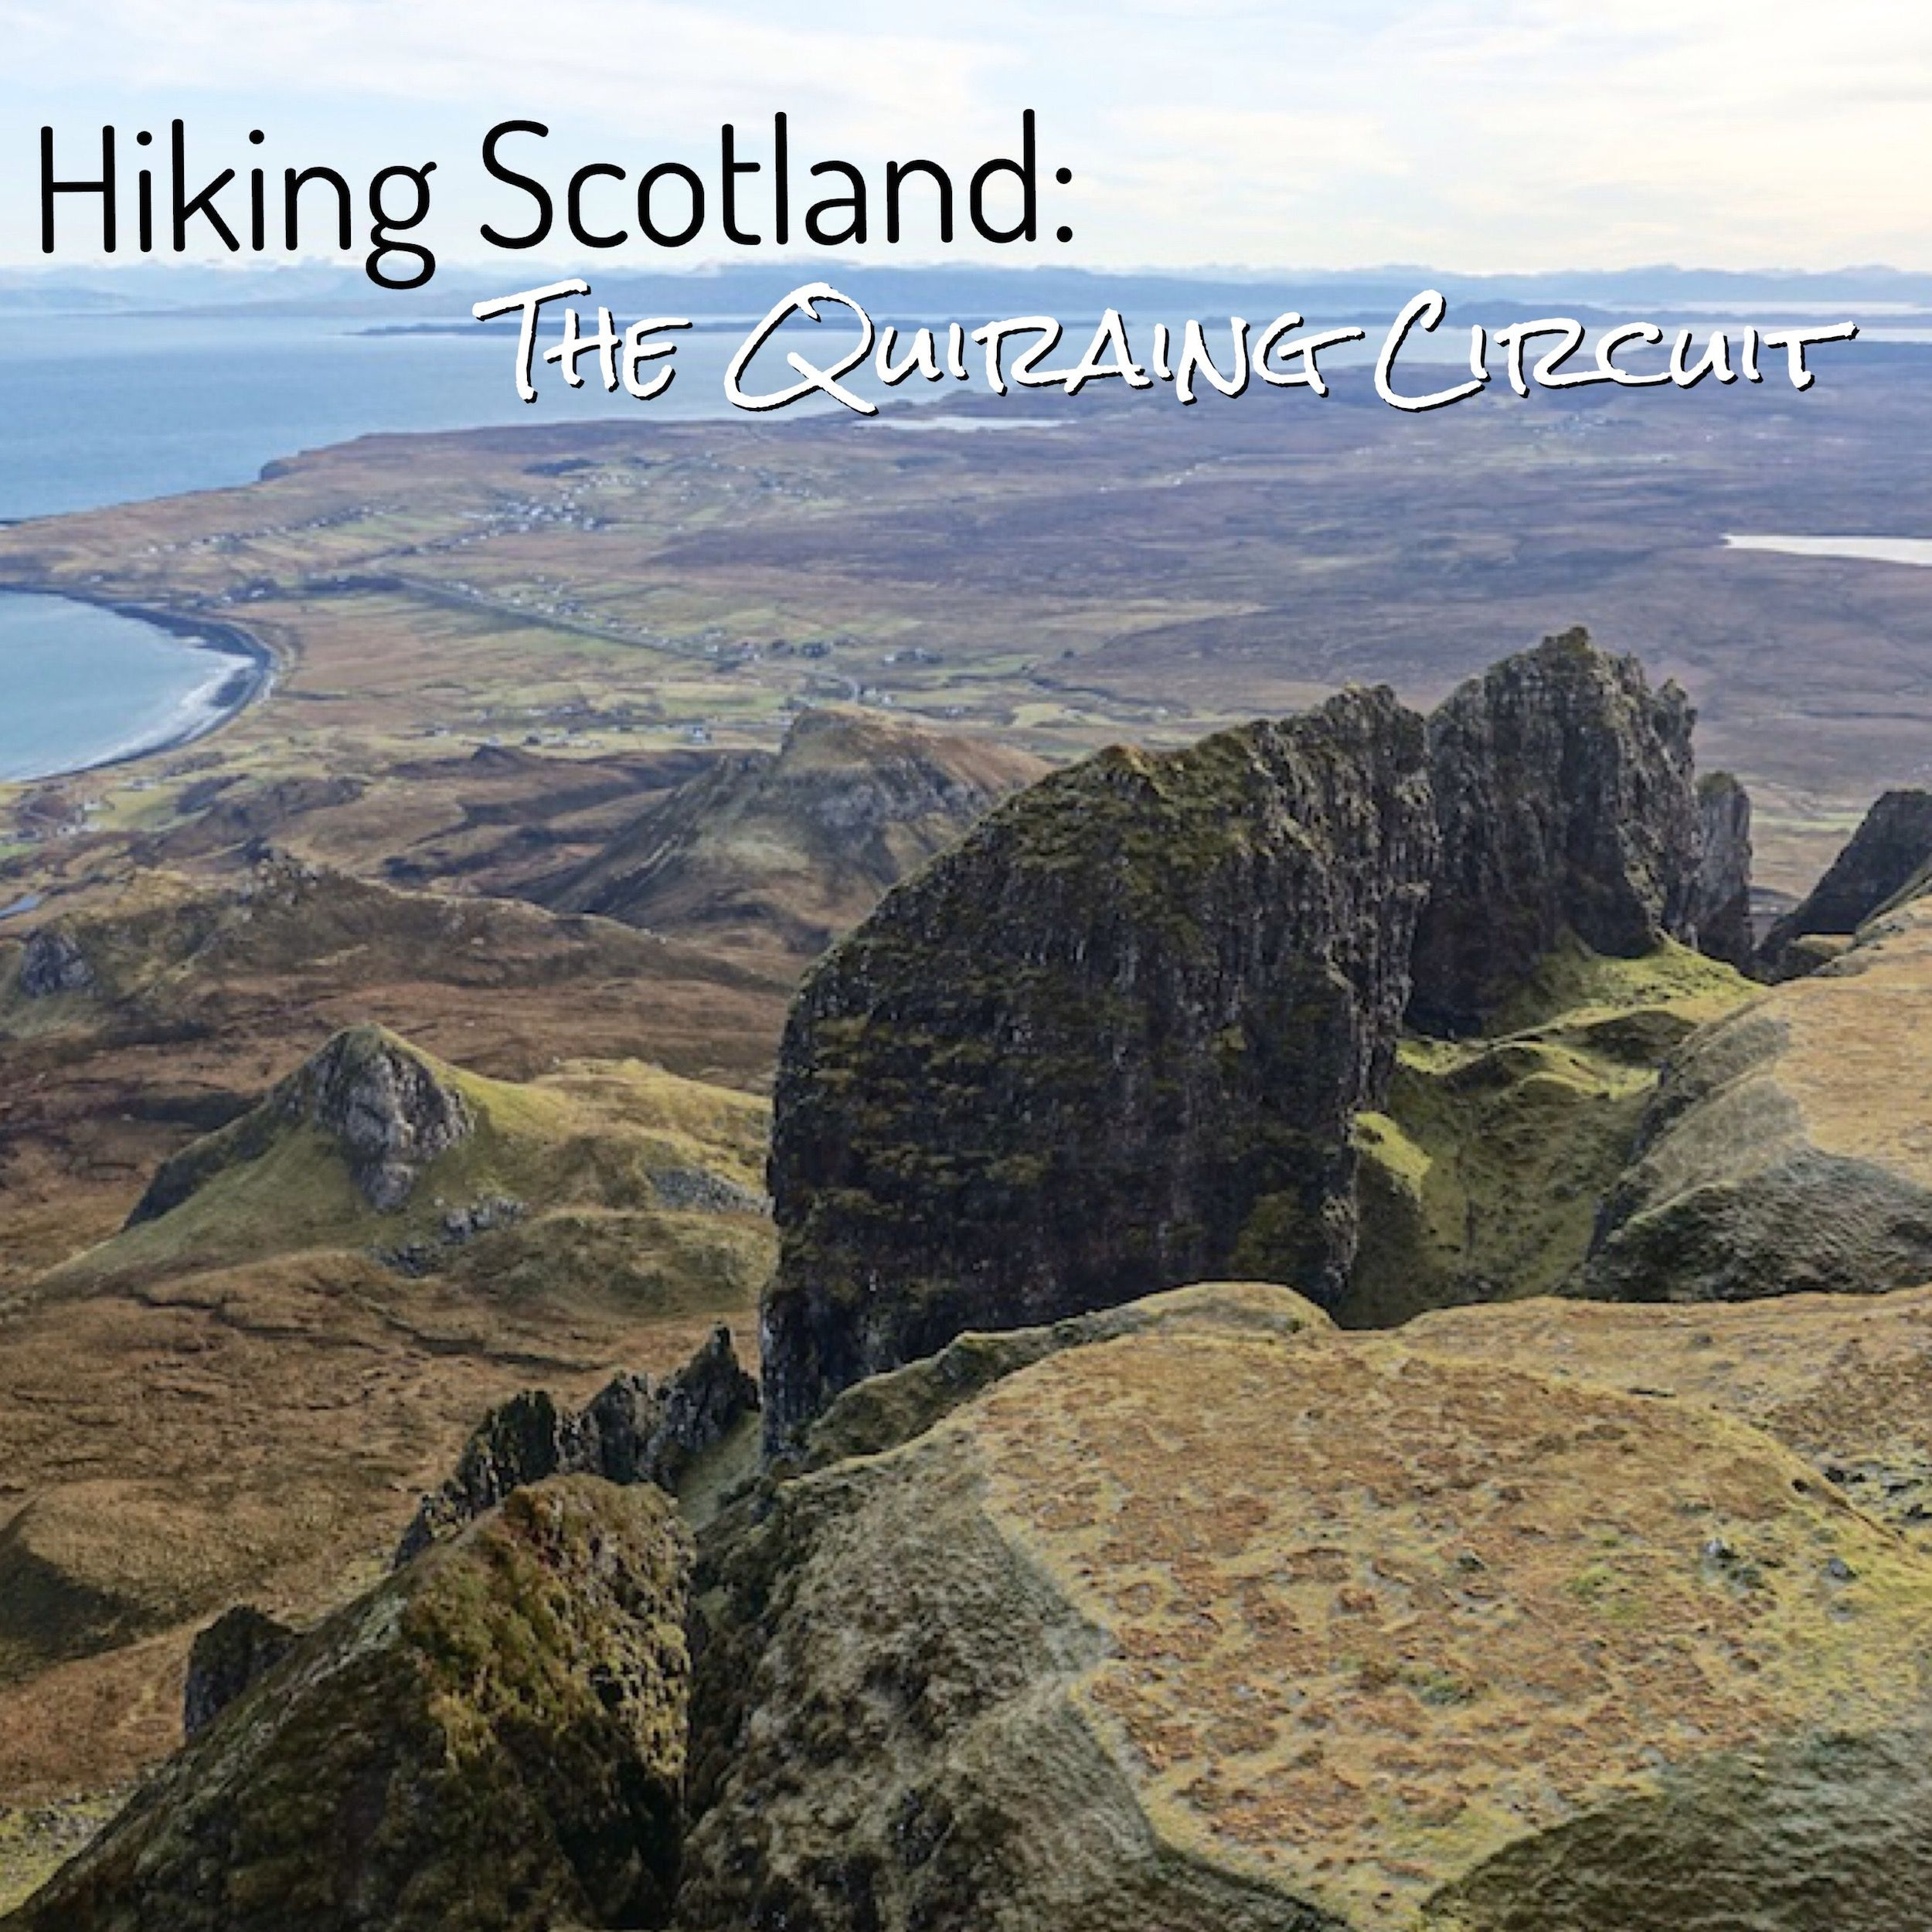 Hiking the Quiriang Circuit on the Isle of Skye, Scotland - Best hikes on The Isle of Skye